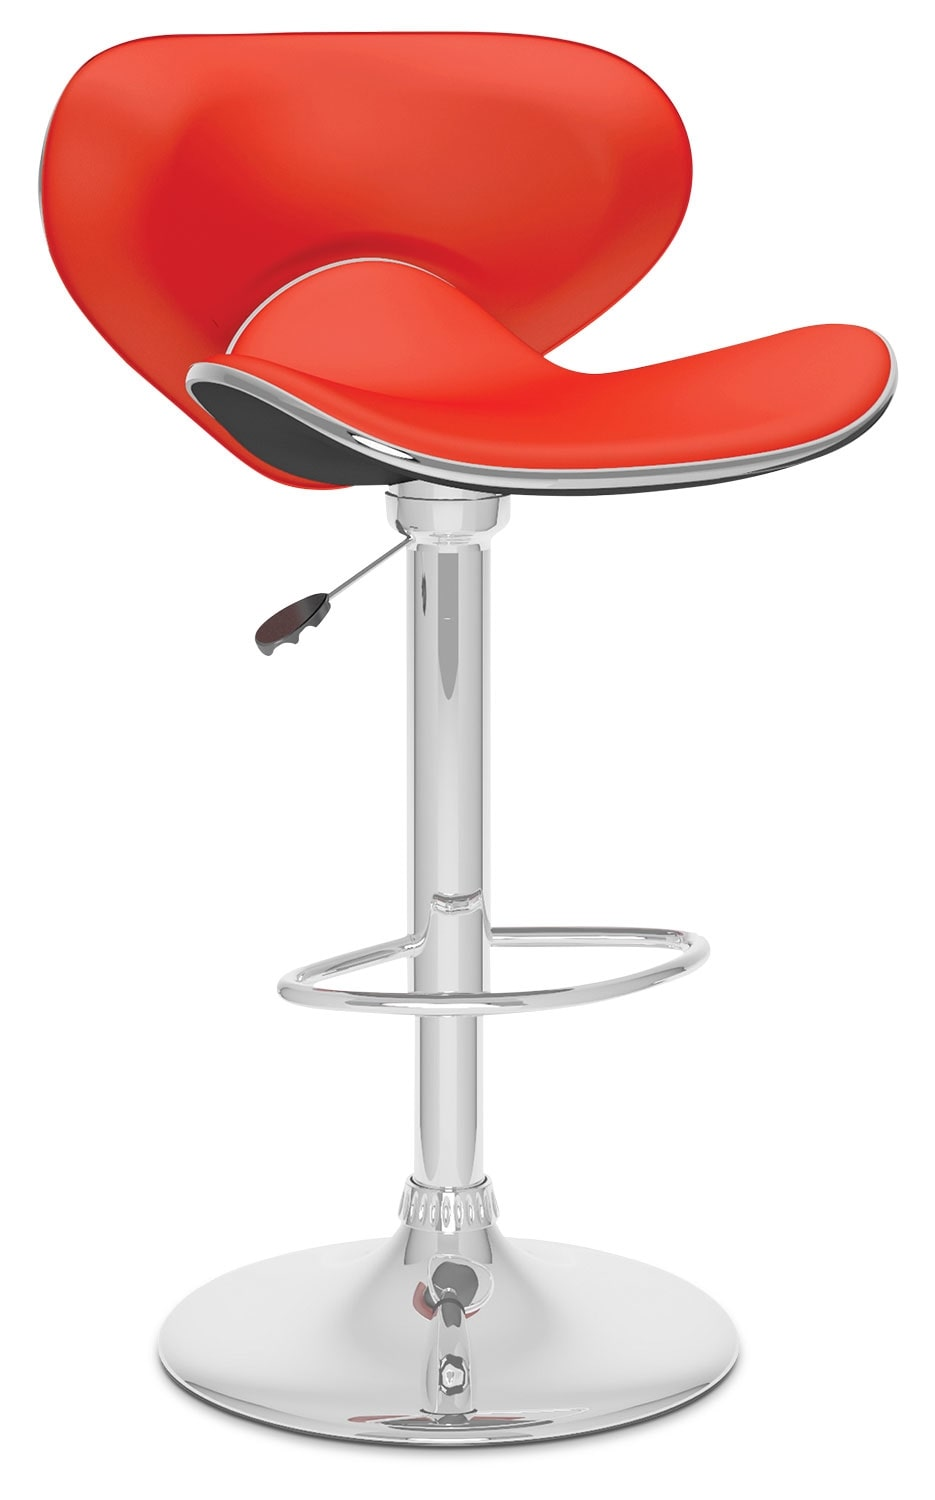 Dining Room Furniture - CorLiving Curved Form-Fitting Adjustable Bar Stool - Red